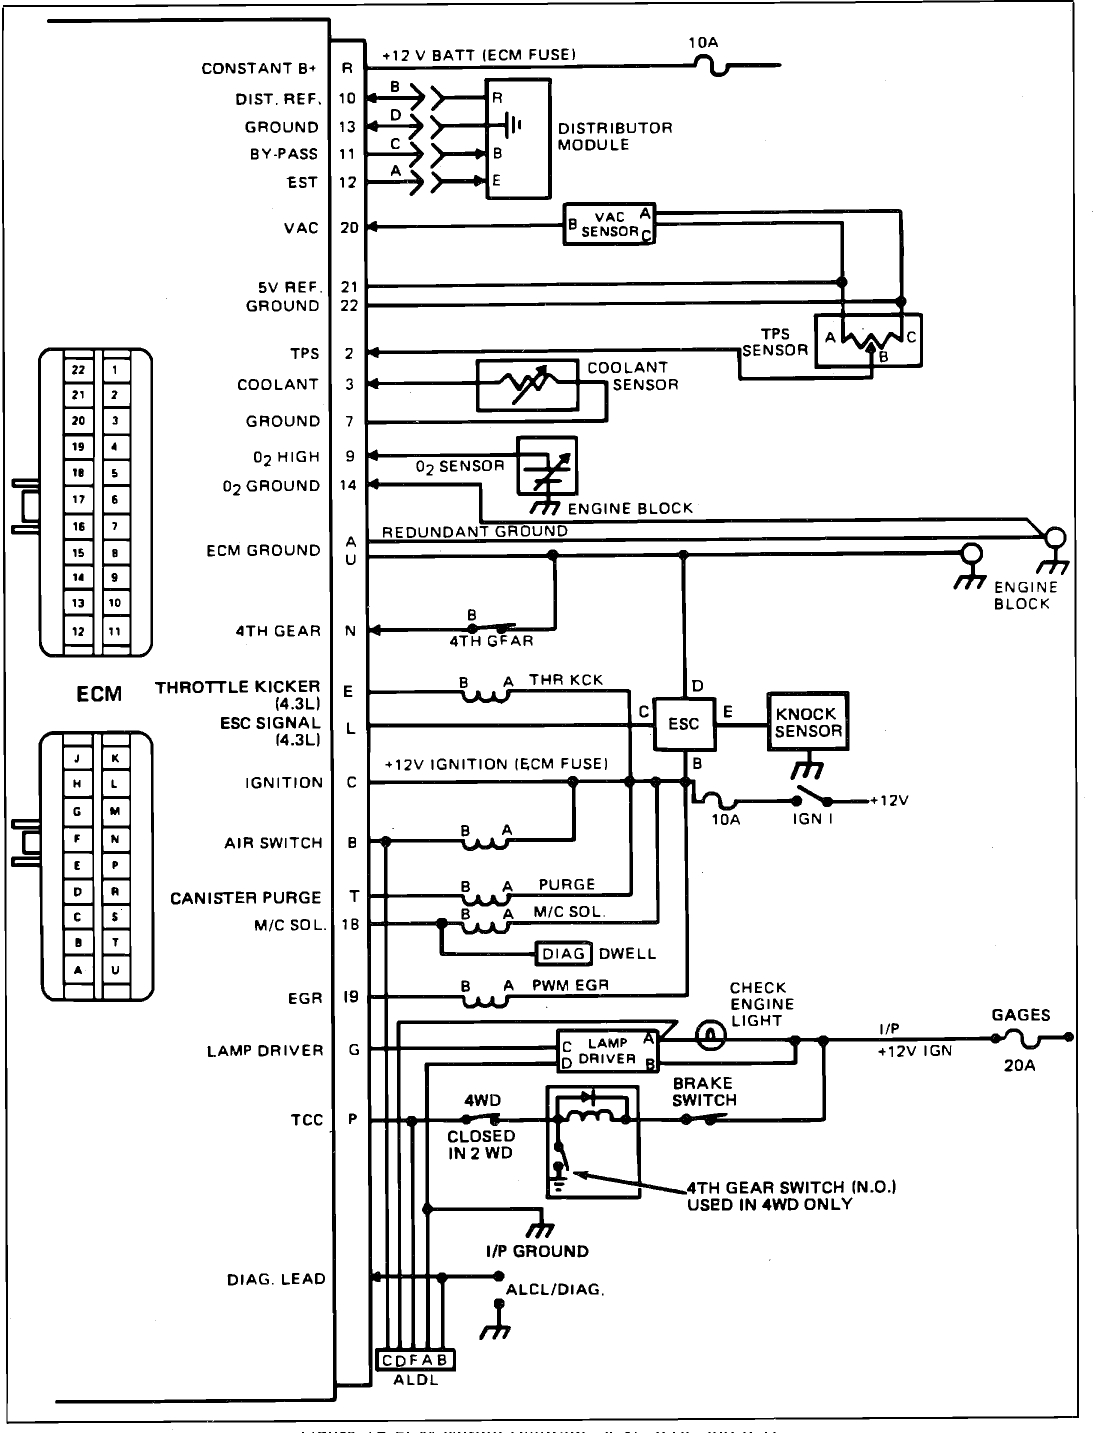 1999 Isuzu Rodeo Fuse Box Diagram Car Tuning